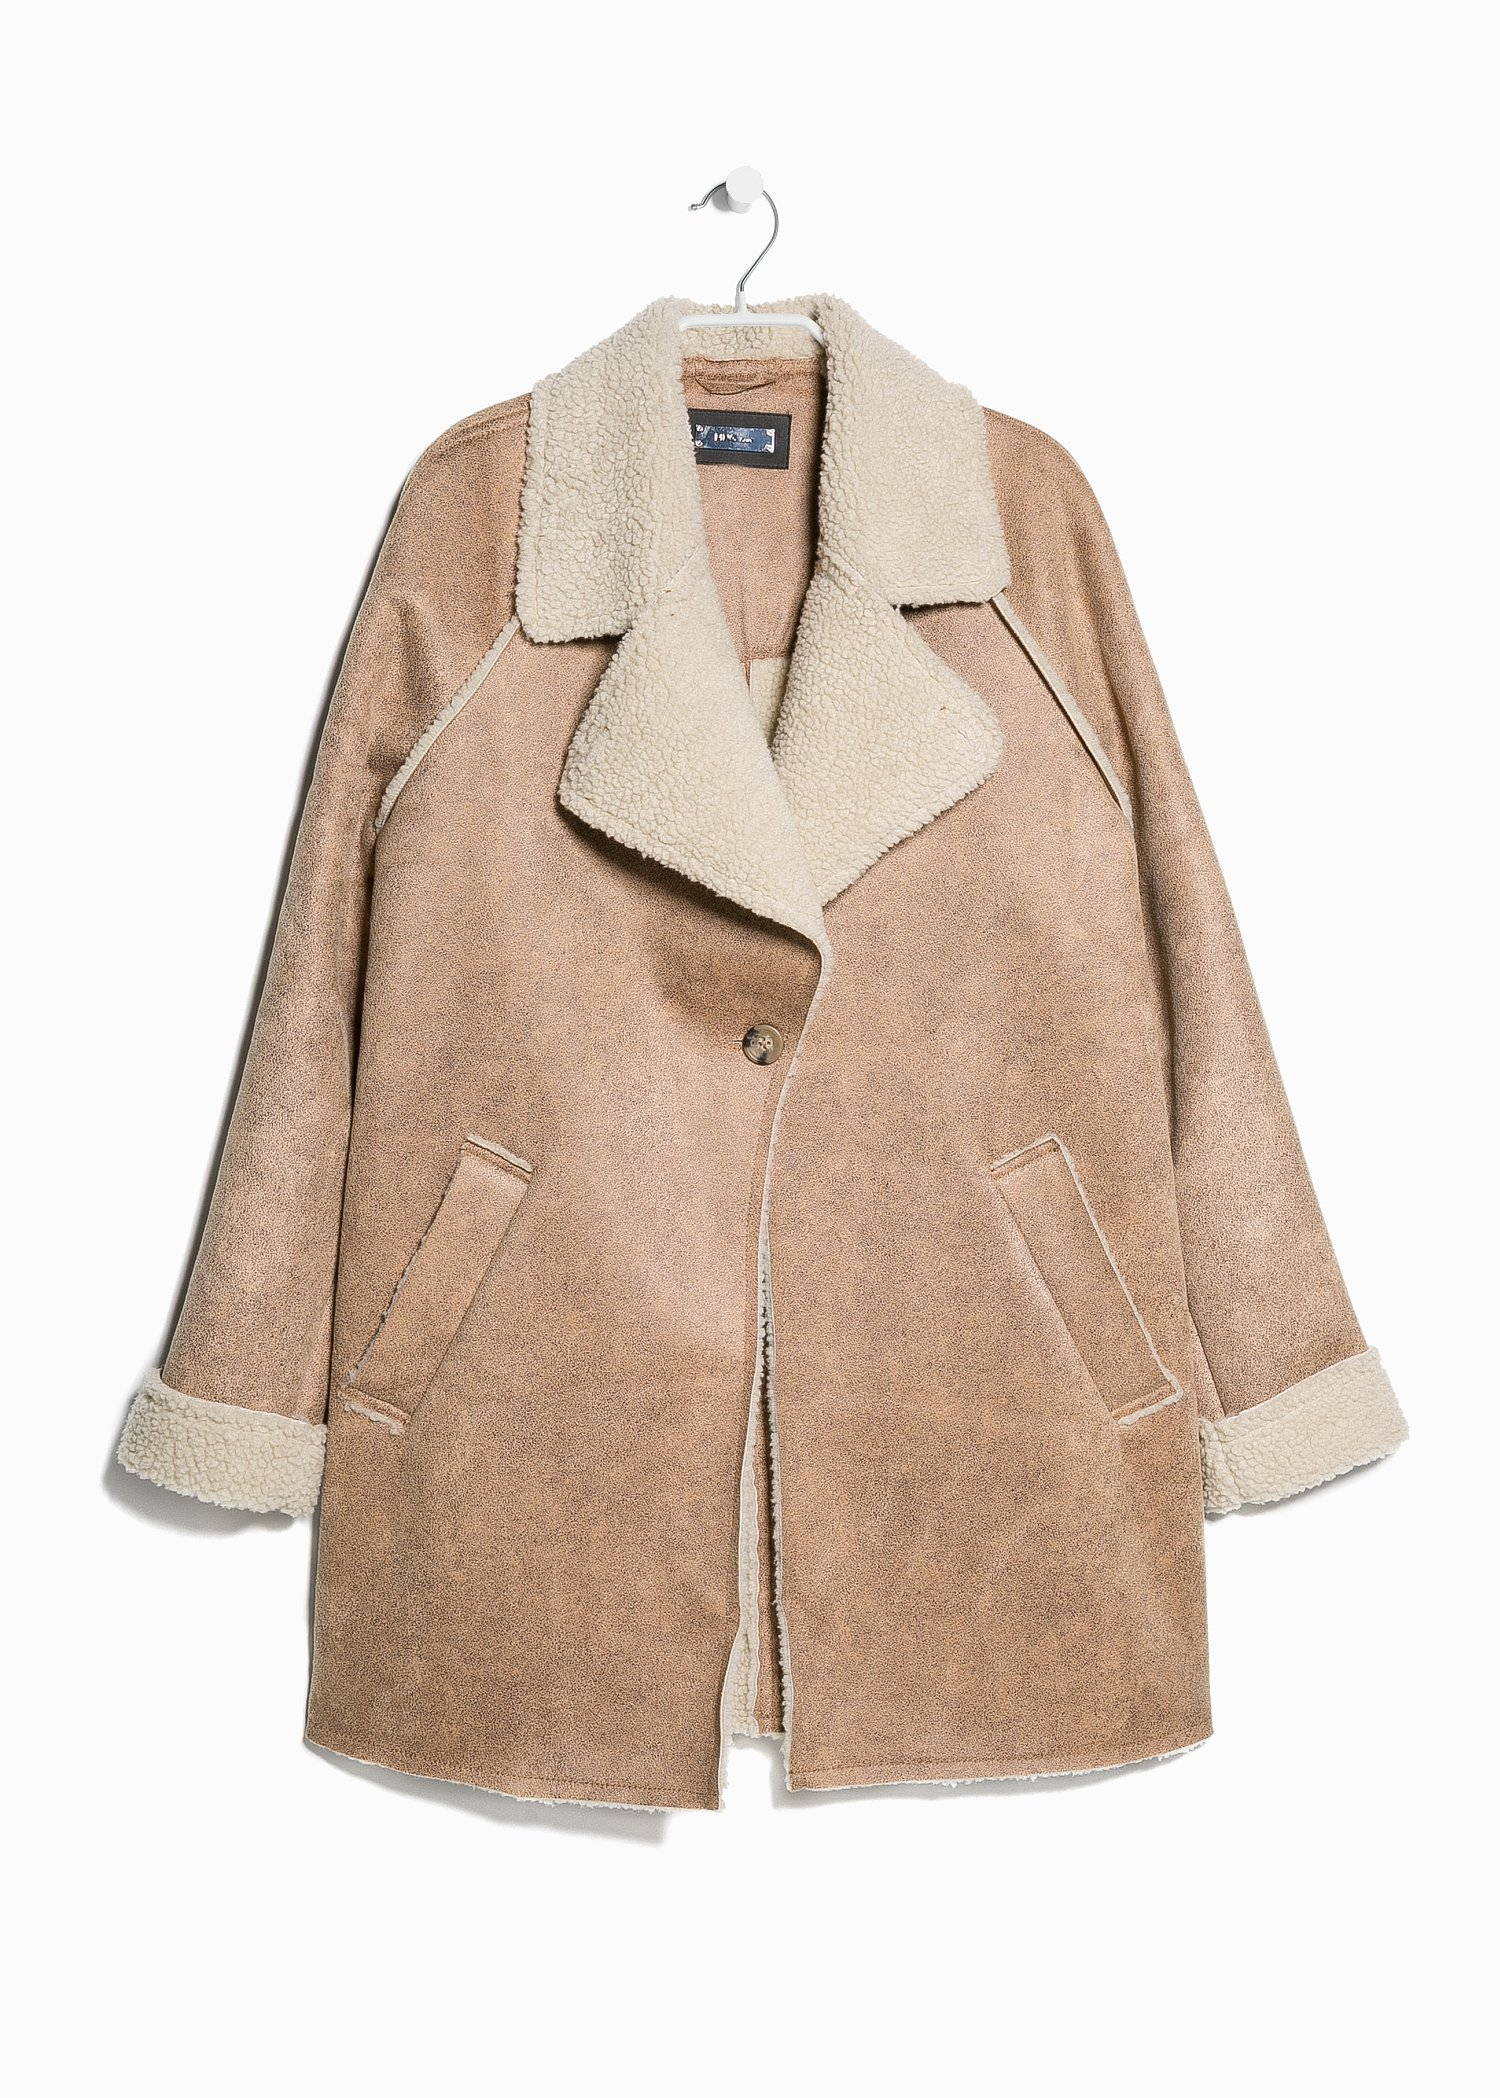 Mango Faux Shearling-Lined Coat in Brown | Lyst